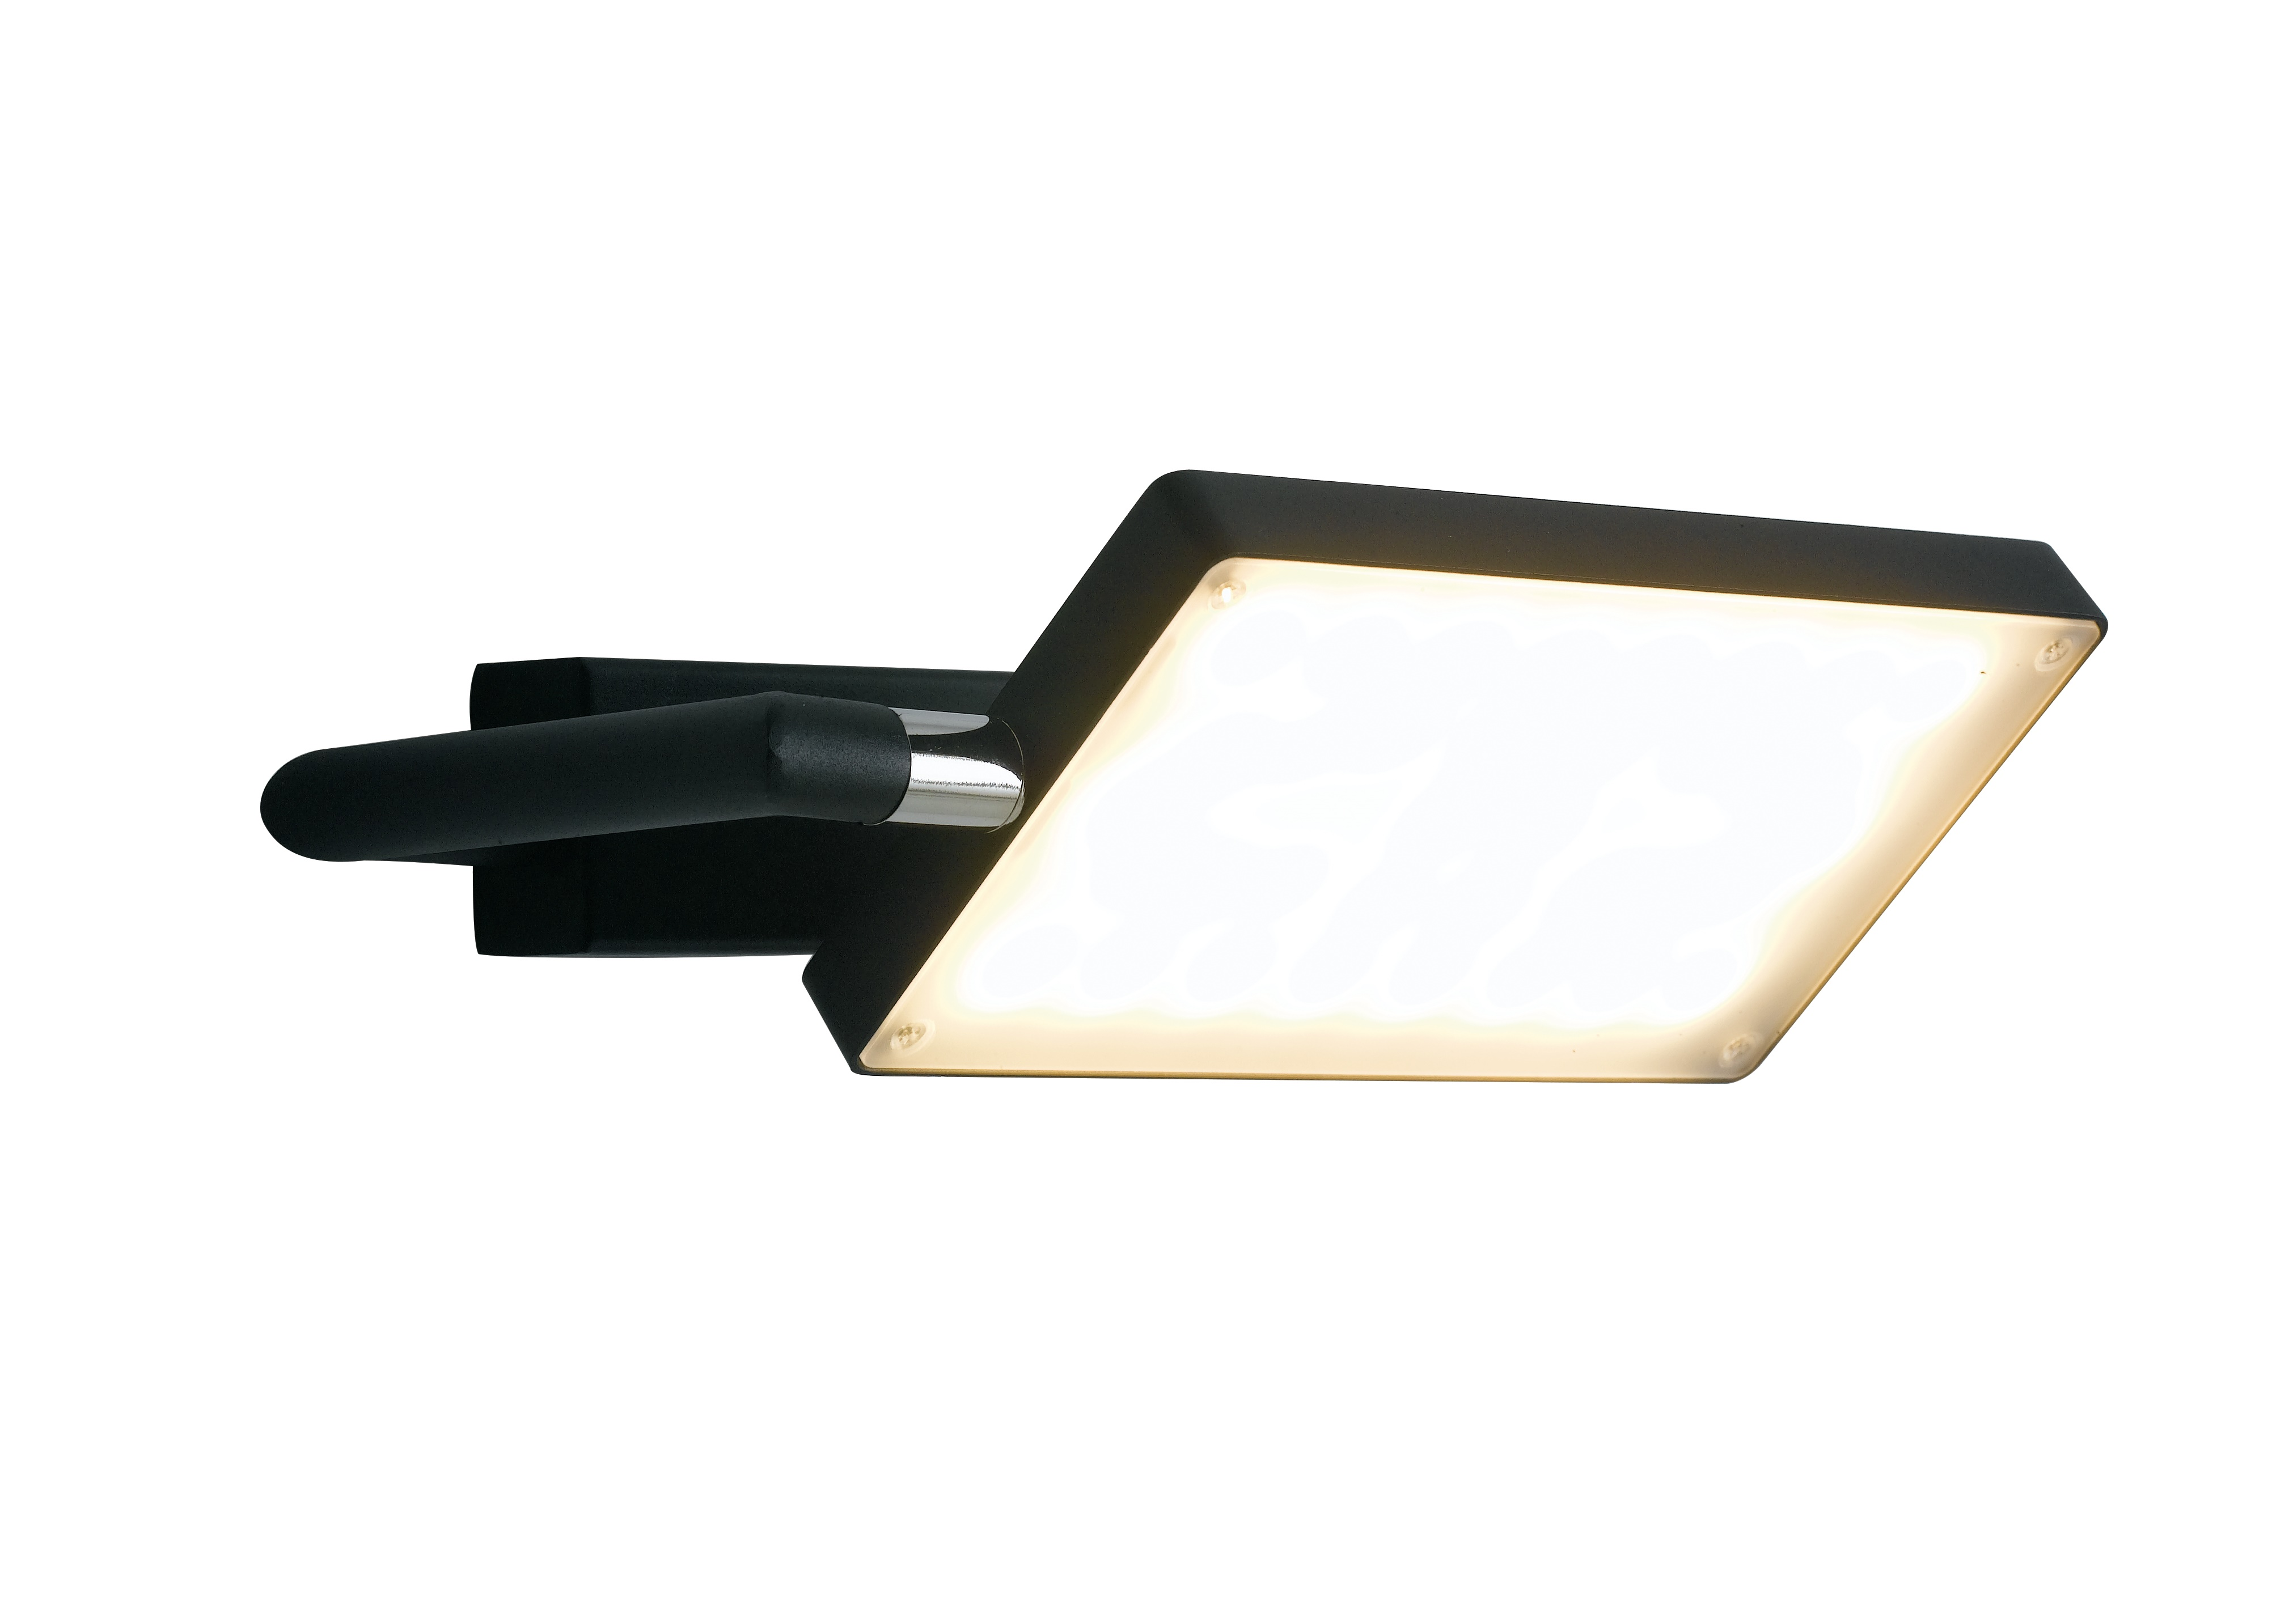 Applique Orientabile Alluminio Lampada Libro Nera Led 17 watt Luce Calda Ambiente LED-BOOK-AP